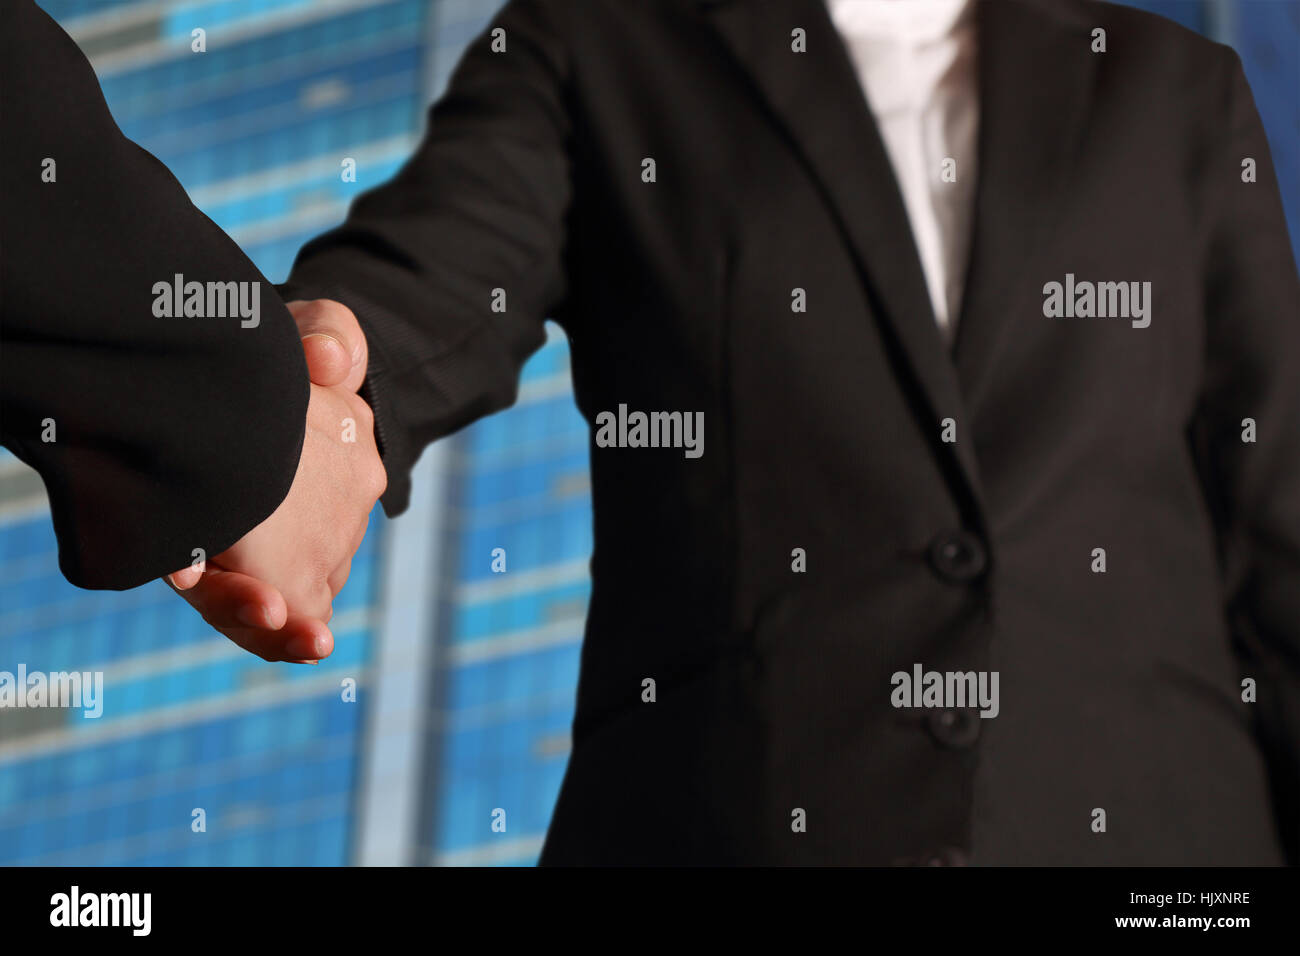 Business handshake, Business deal finalized, Congratulations Concept - Stock Image